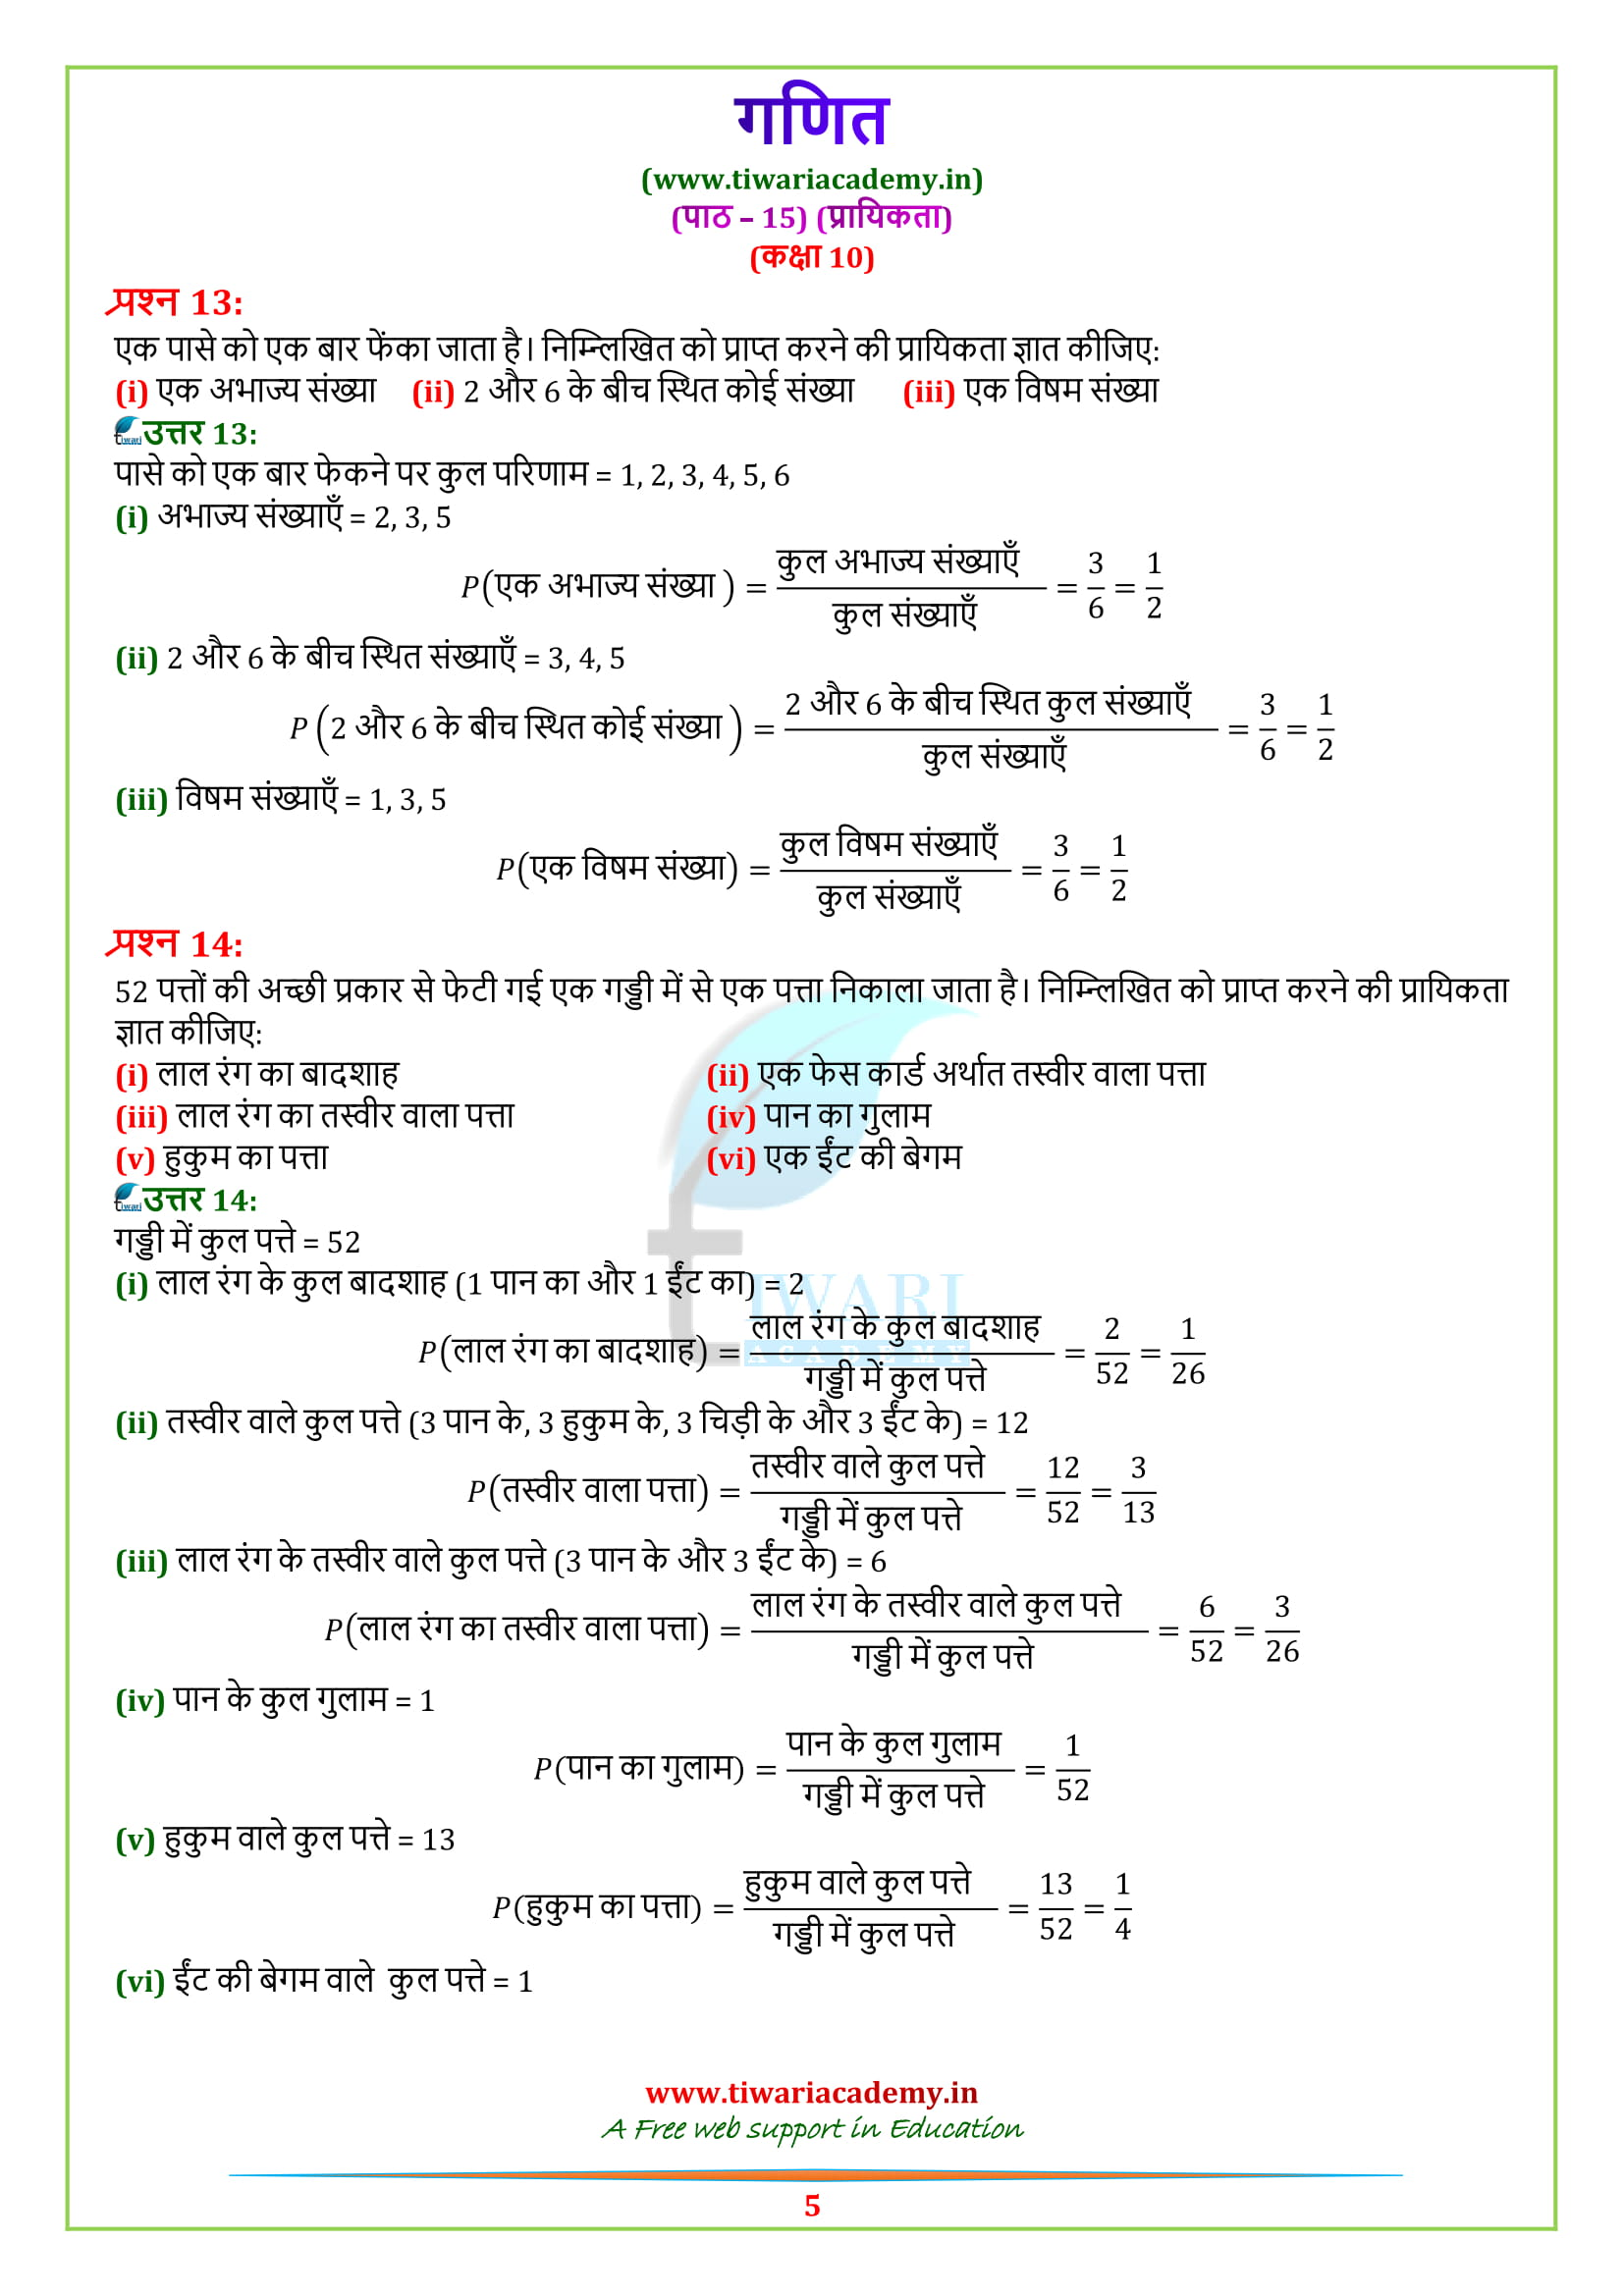 Class 10 Maths Exercise 15.1 solutions download free in pdf